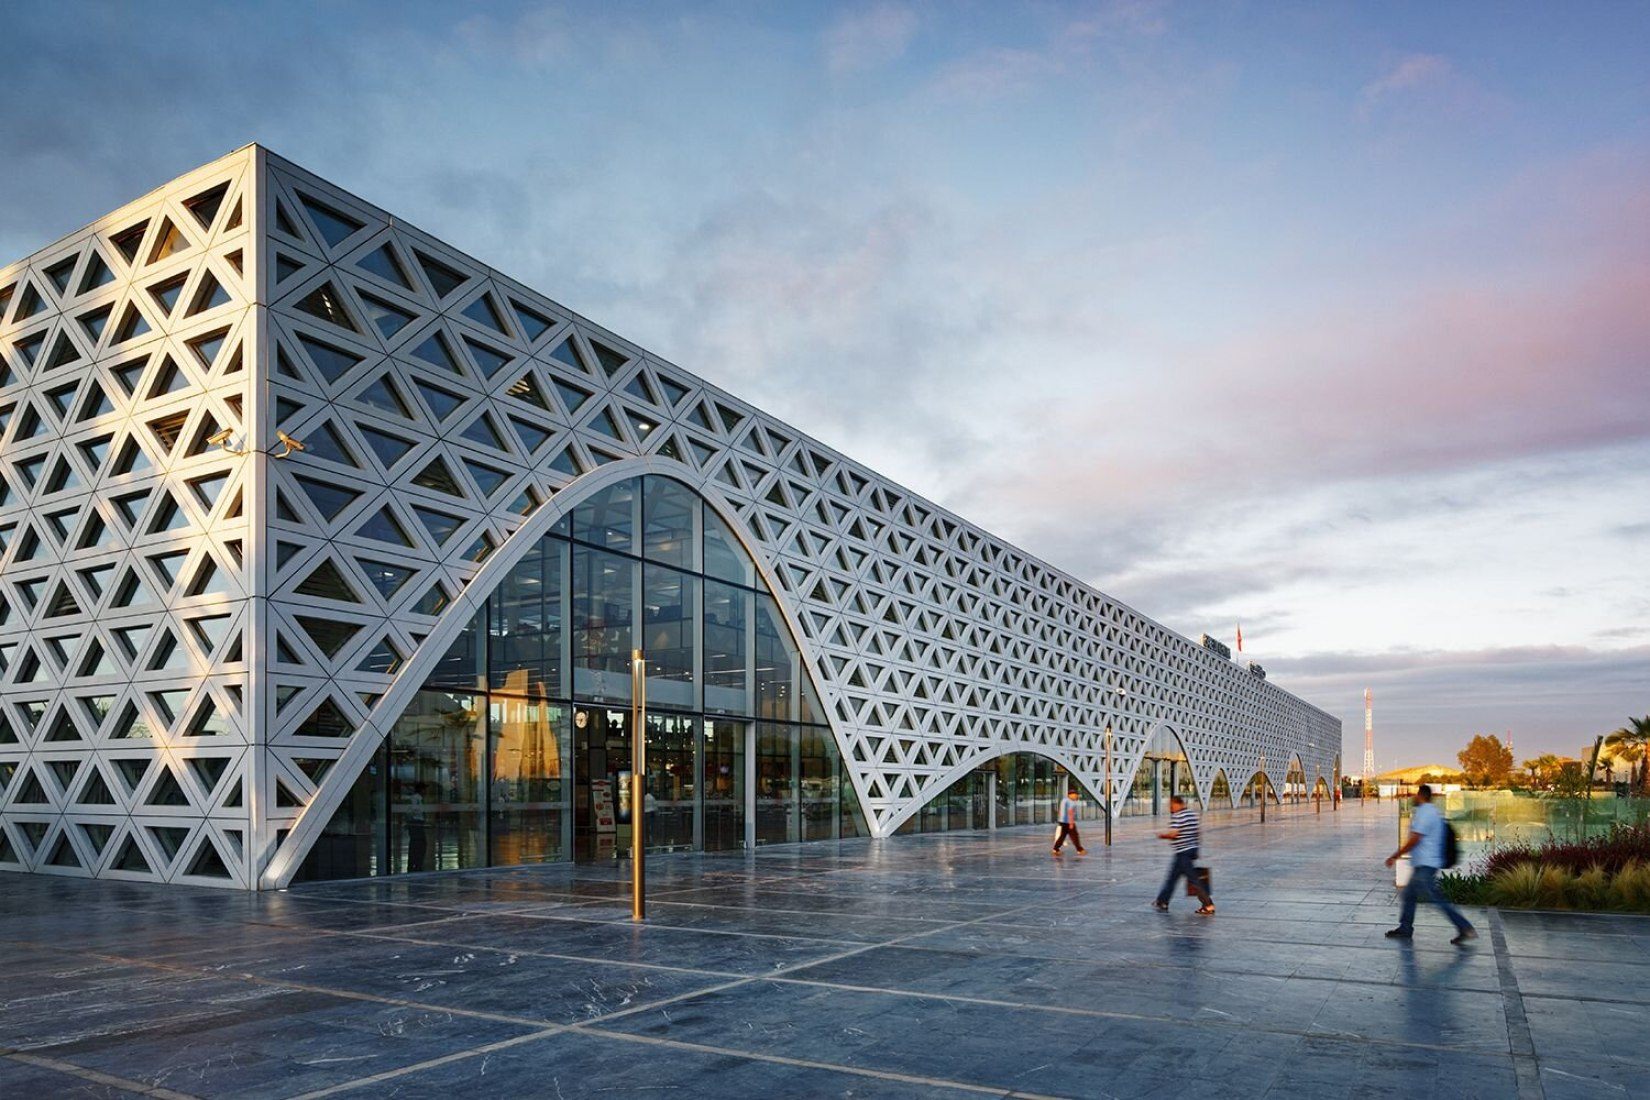 Kenitra High-speed rail station and transit hub by Silvio d'Ascia Architecture + Omar Kobbité Architectes. Photograph by Takuji Shimmura